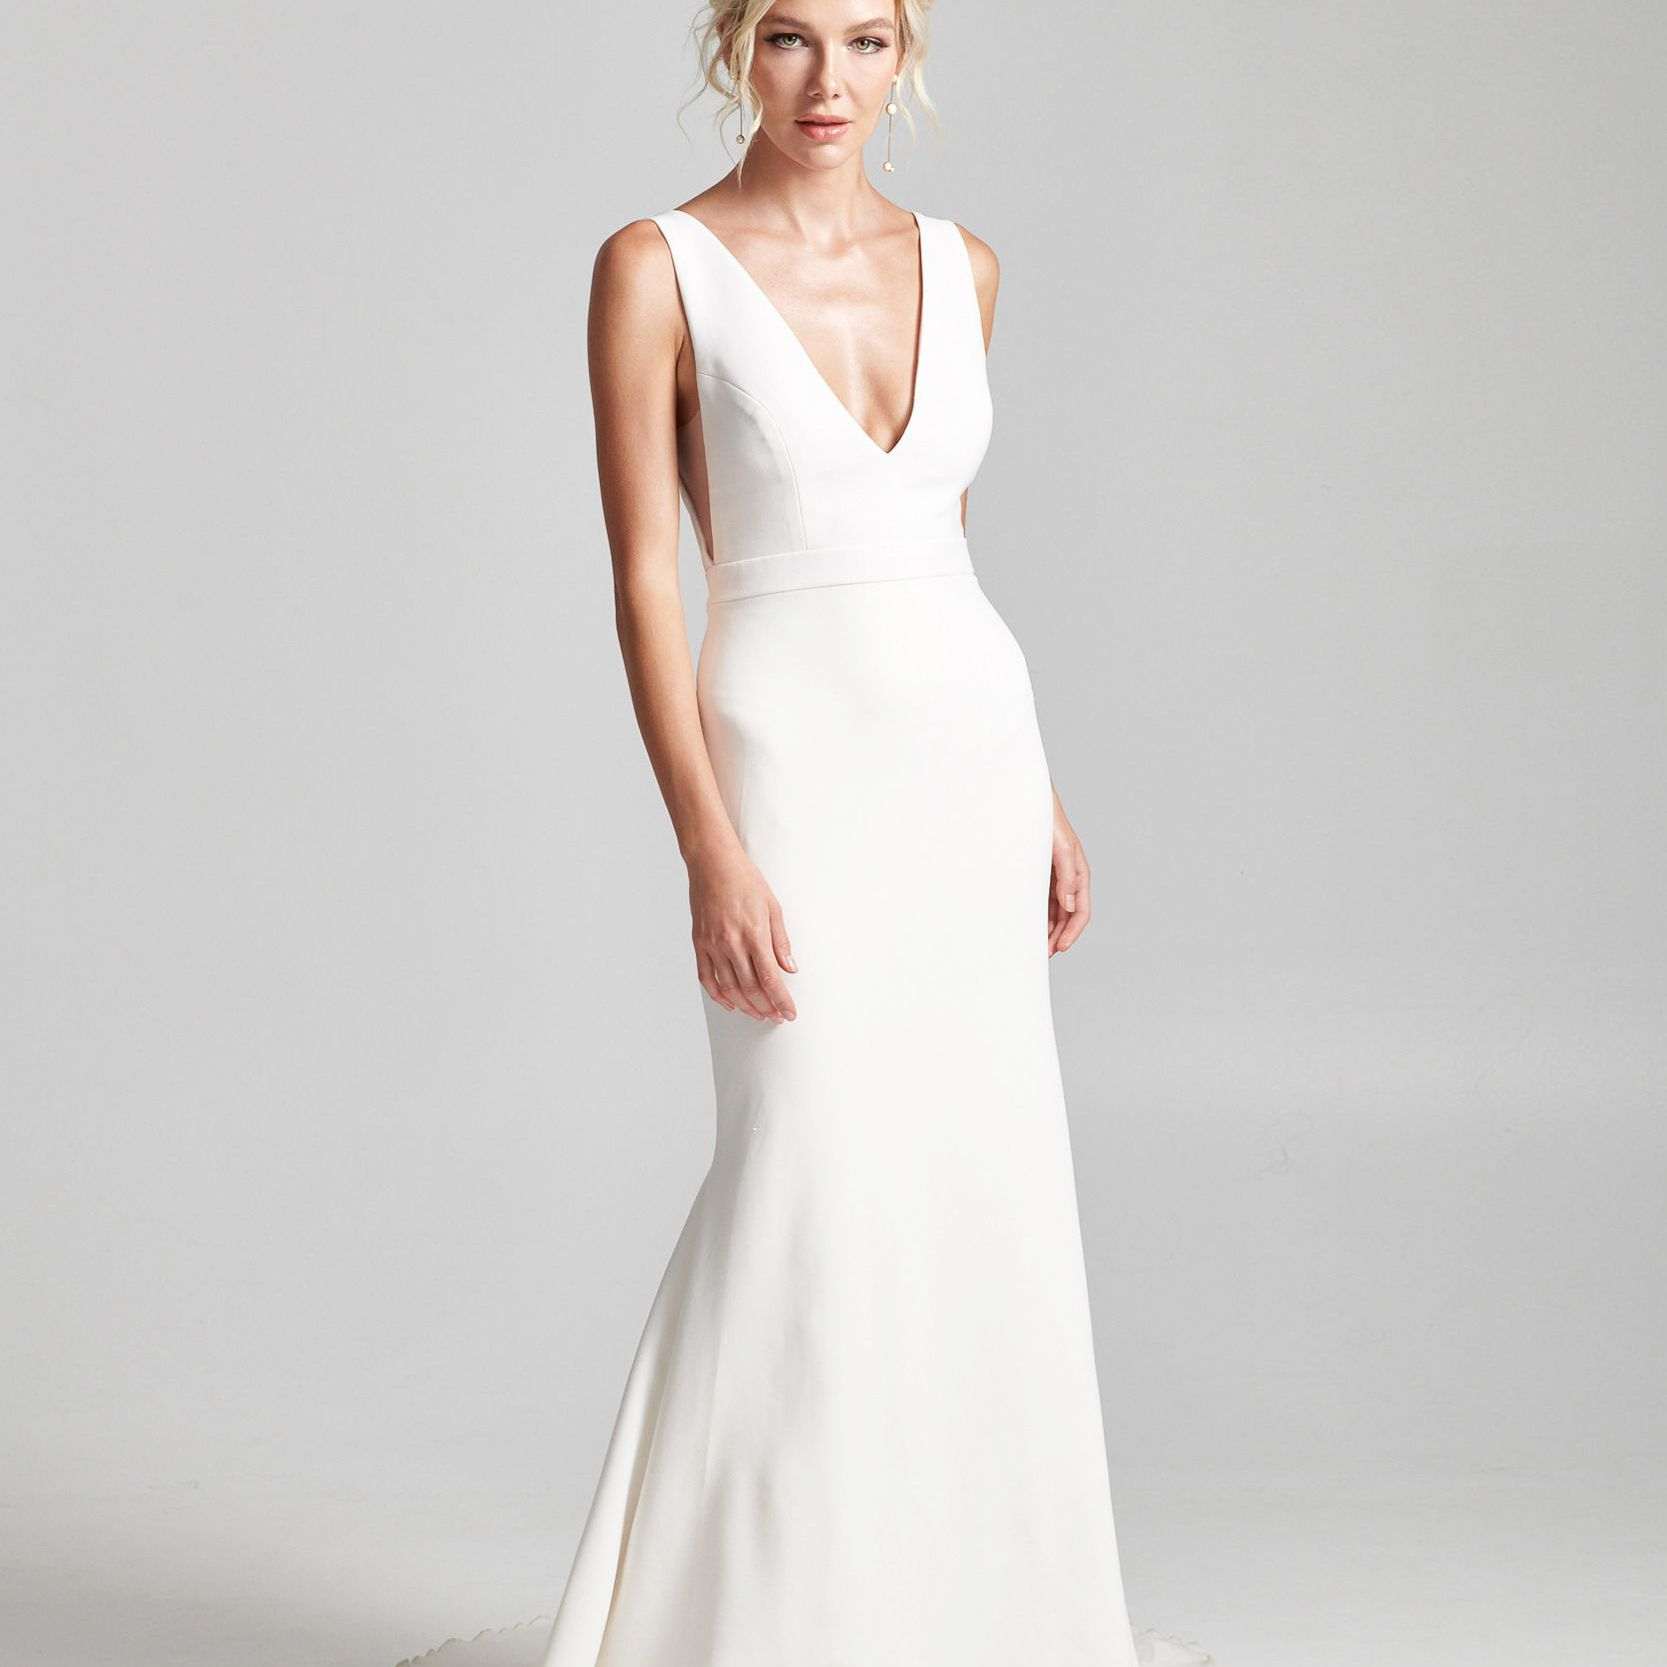 Model in sleeveless wedding dress with deep V neckline and banded waist